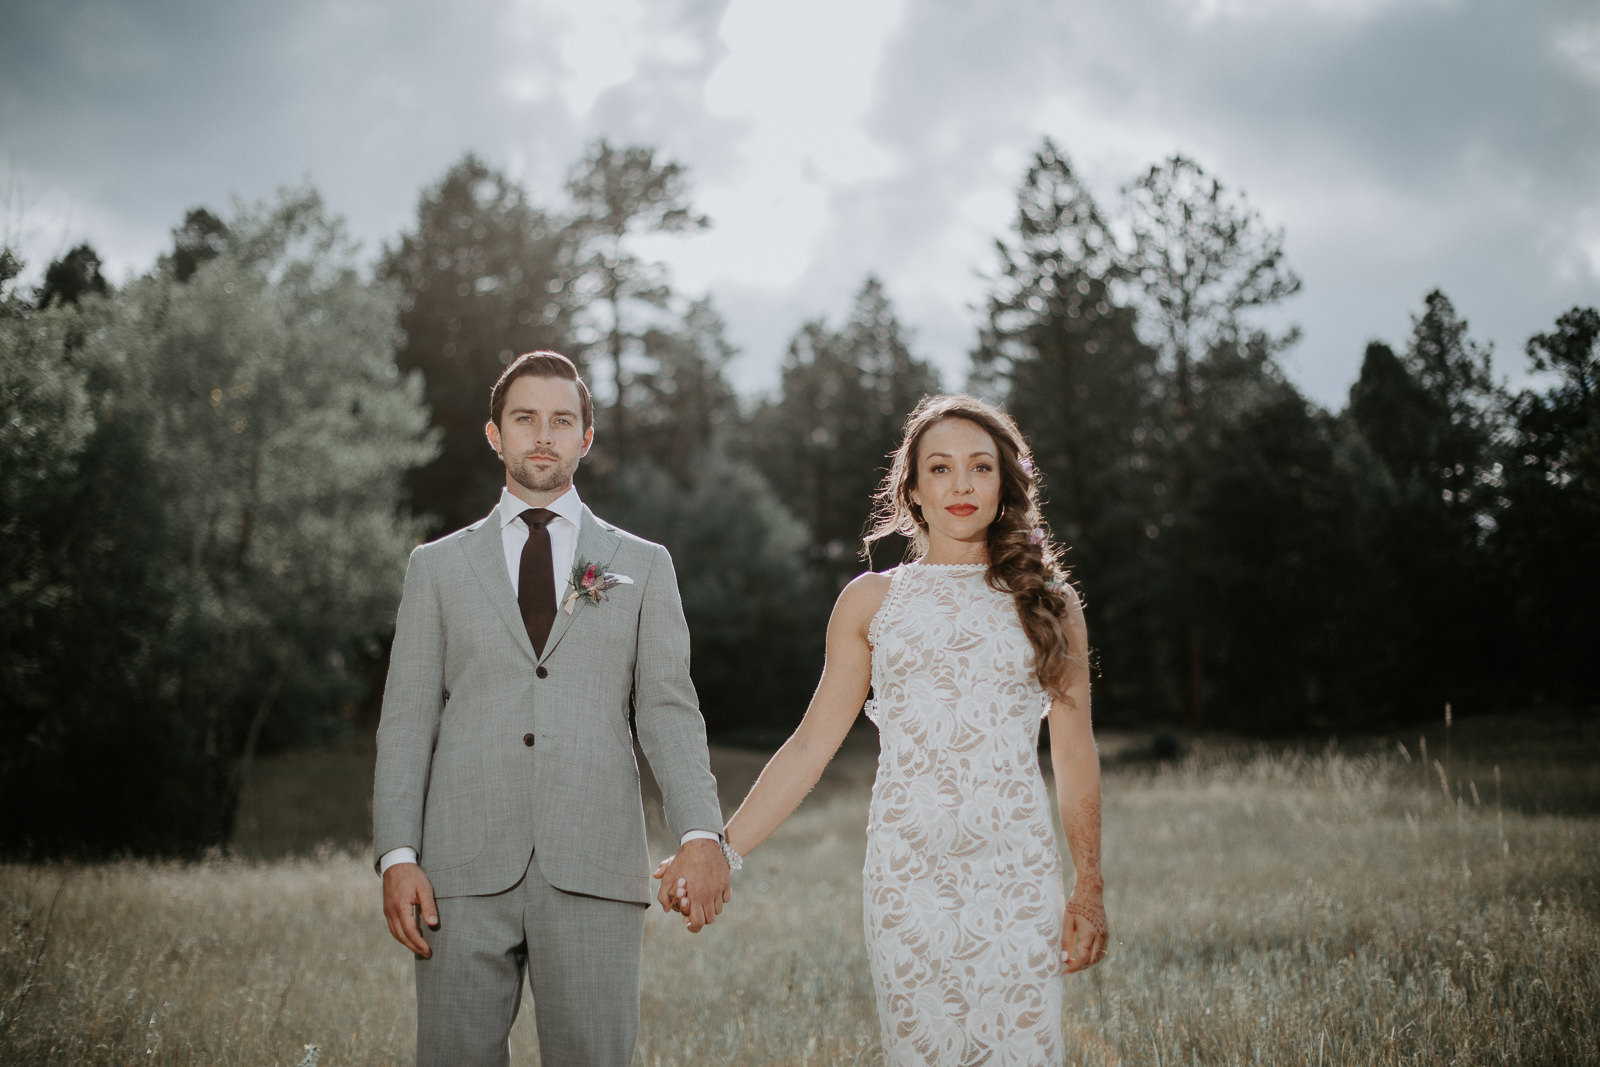 Couple holding hands on their wedding day looking straight at the camera with pine trees and clouds in background